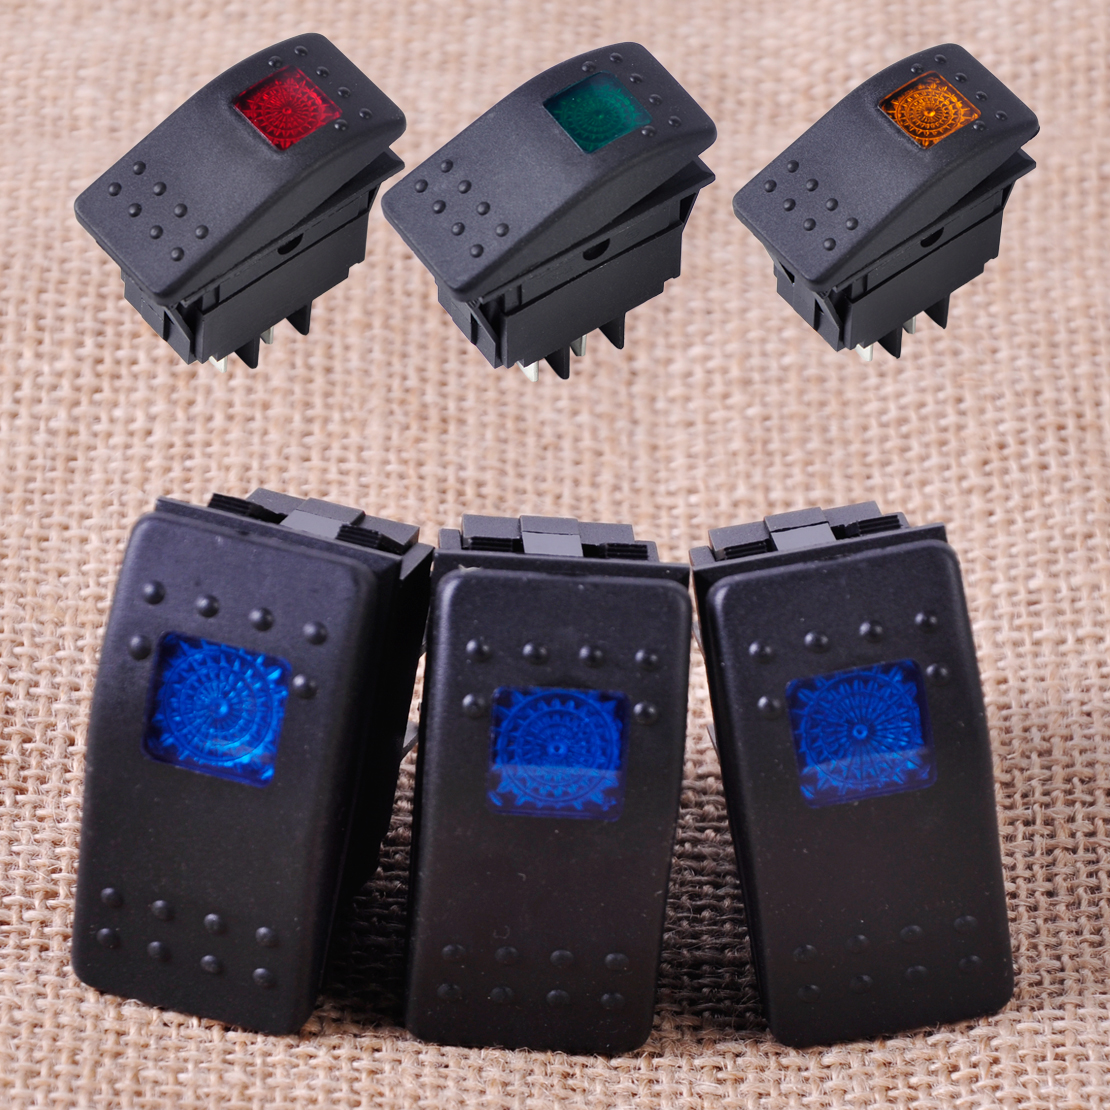 3pcs Waterproof Led Rocker Toggle Switch ON / OFF Button LED Light for Car Boat Buses Motorcycles 12V 20A 4Pin For Ford VW Audi 3pcs waterproof led rocker toggle switch on off button led light for car boat buses motorcycles 12v 20a 4pin for ford vw audi